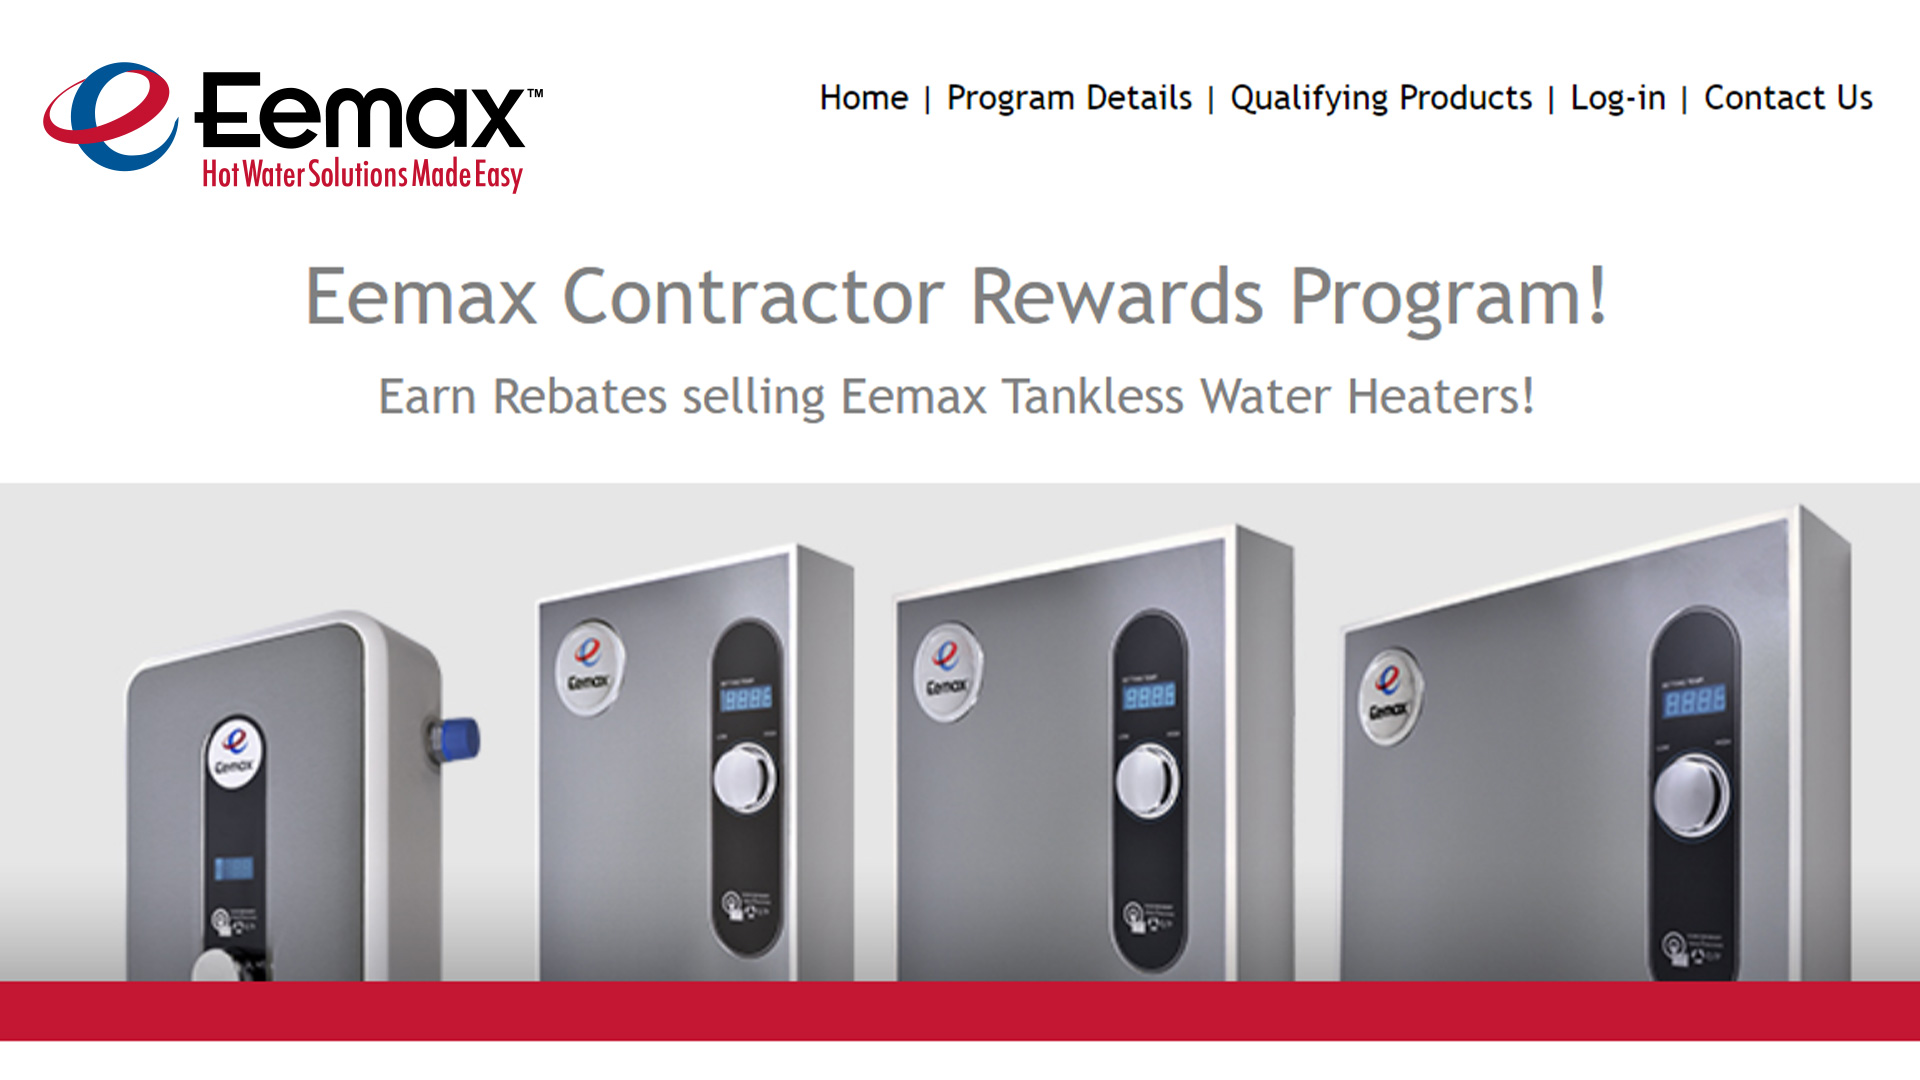 Eemax Rewards Program